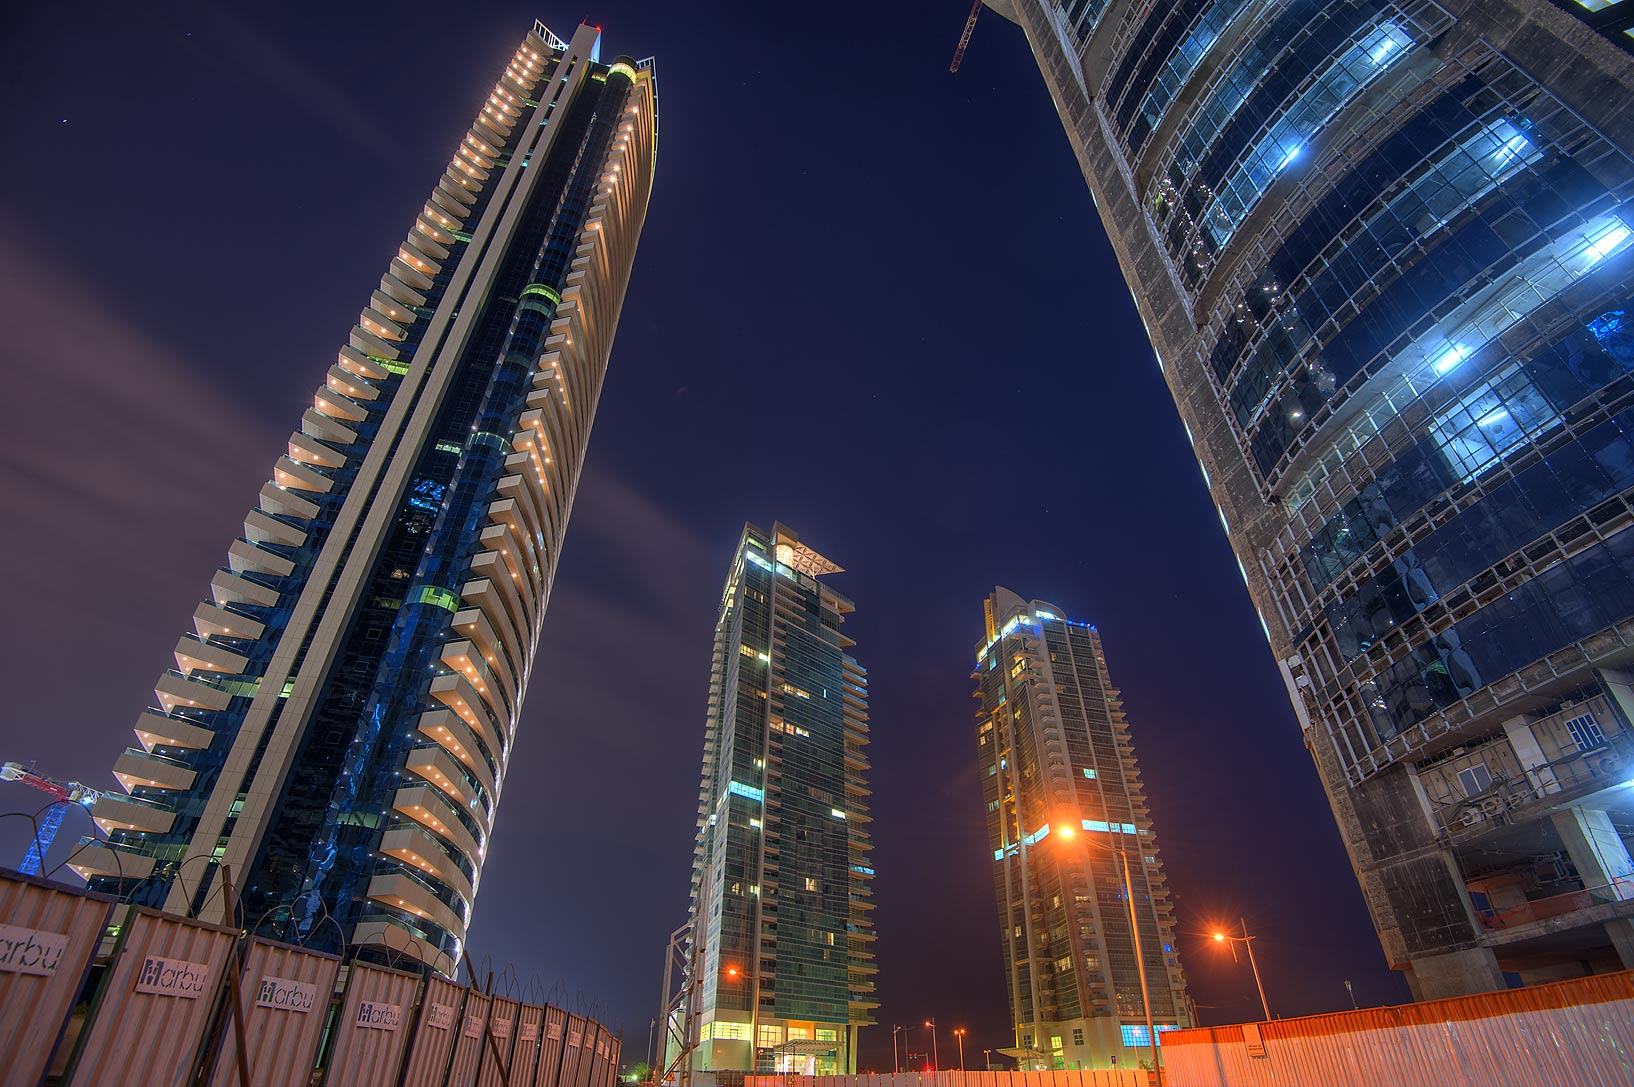 Area of 44 West Bay Tower in West Bay. Doha, Qatar